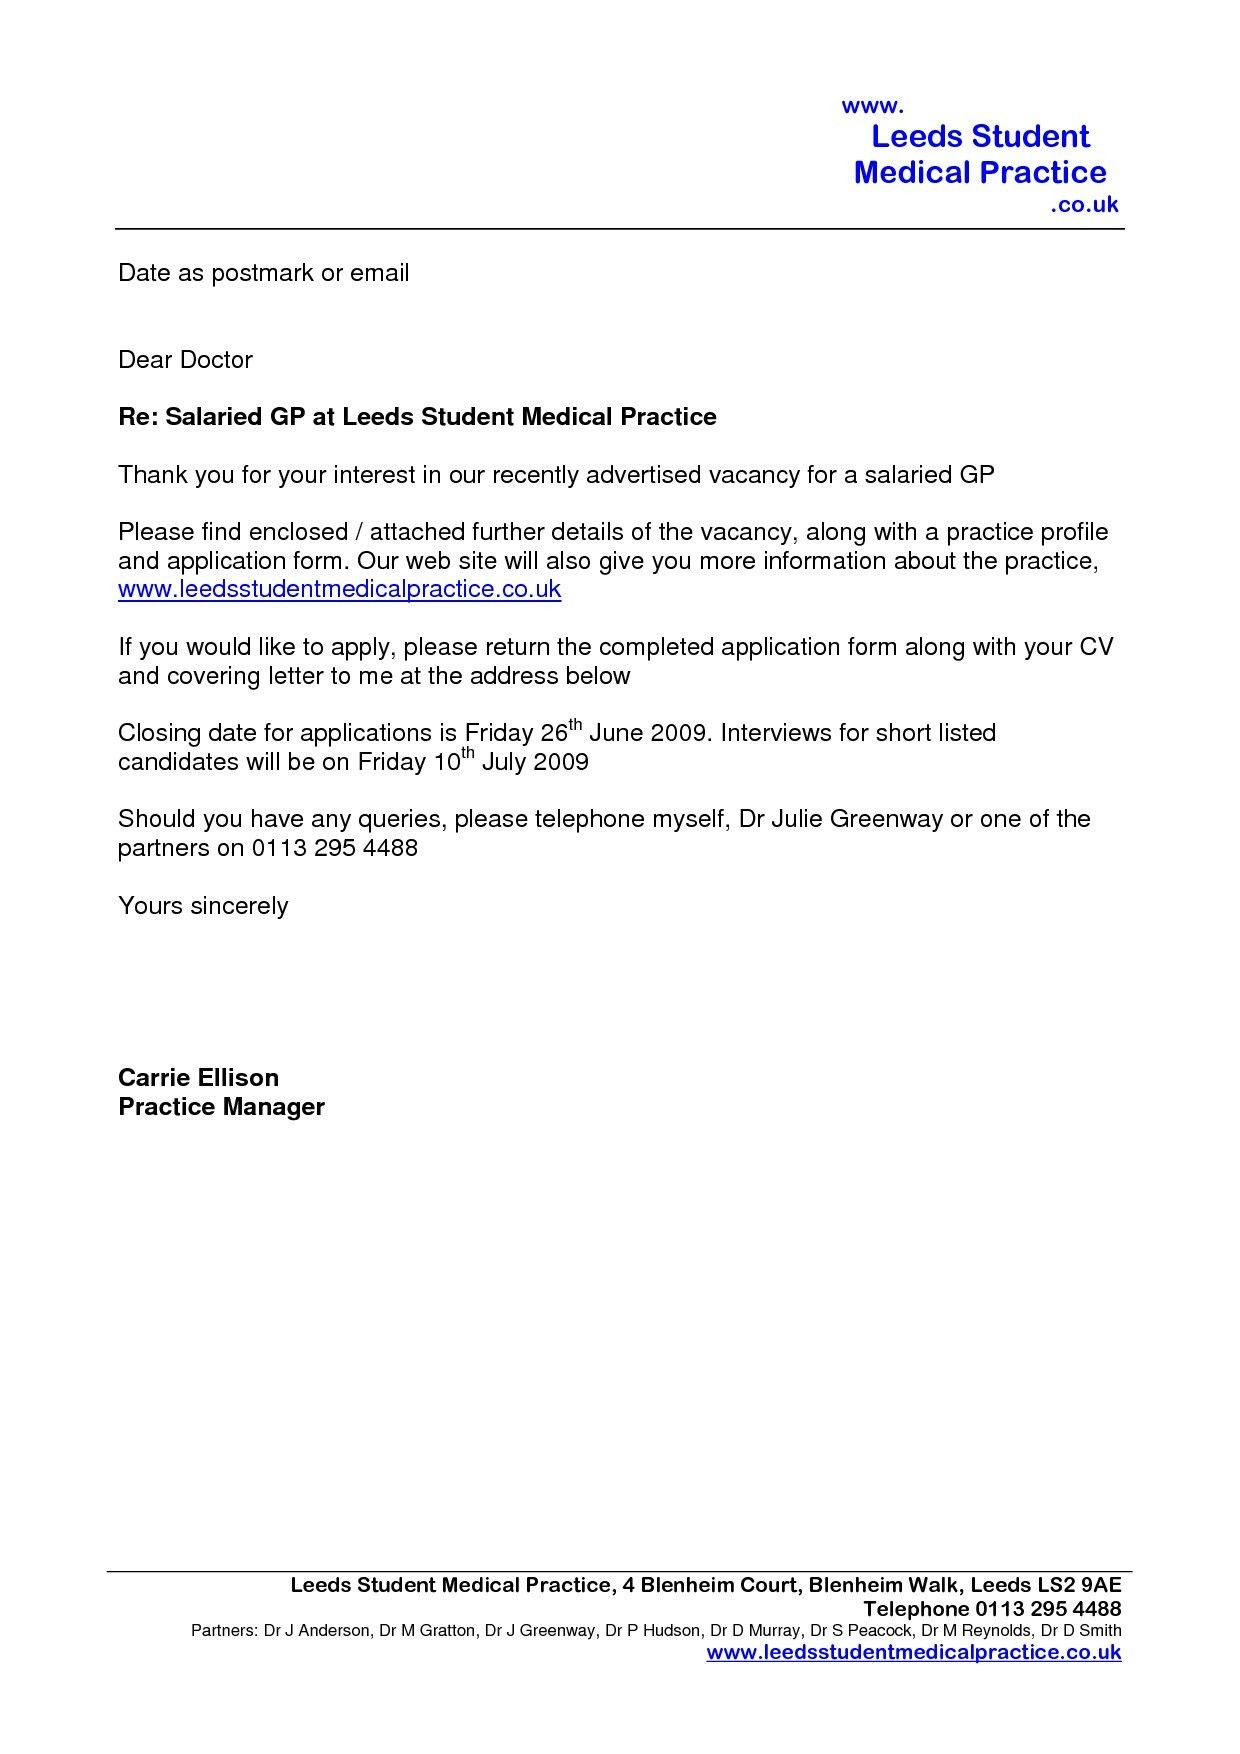 cv covering letter templates uk.html